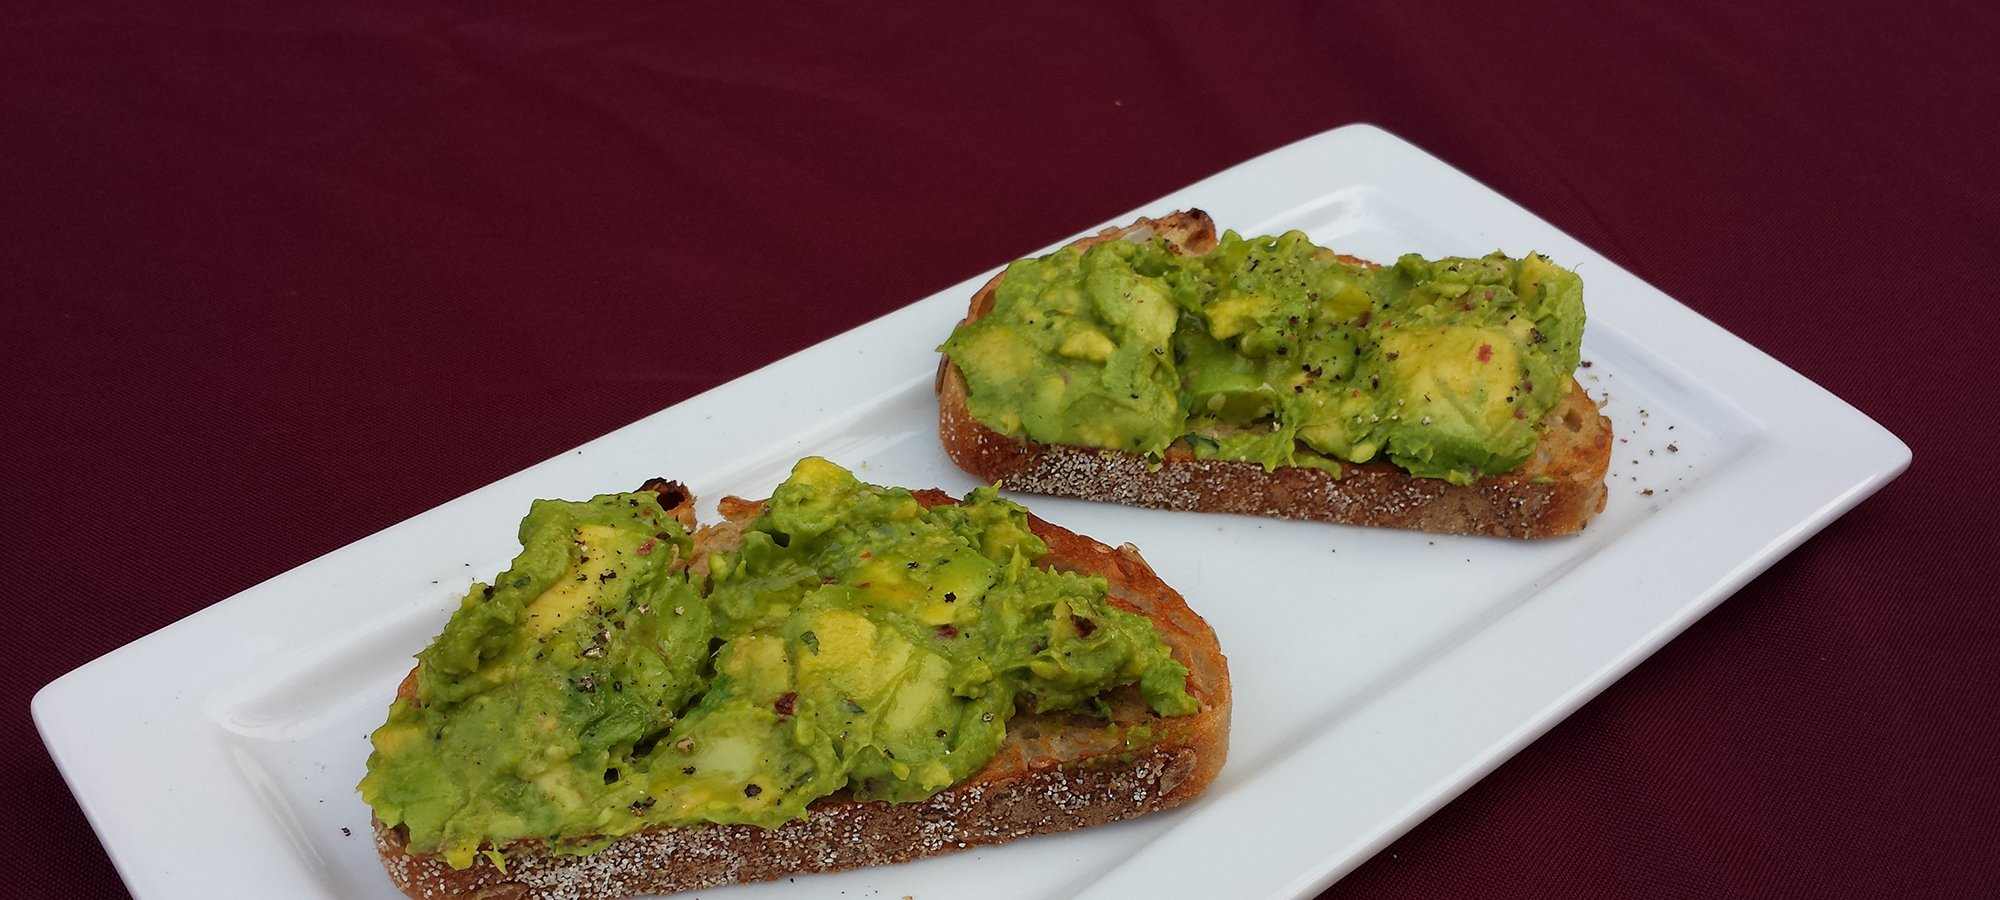 Avocado Toast ginger thai baqsil chili sunflower seed toast